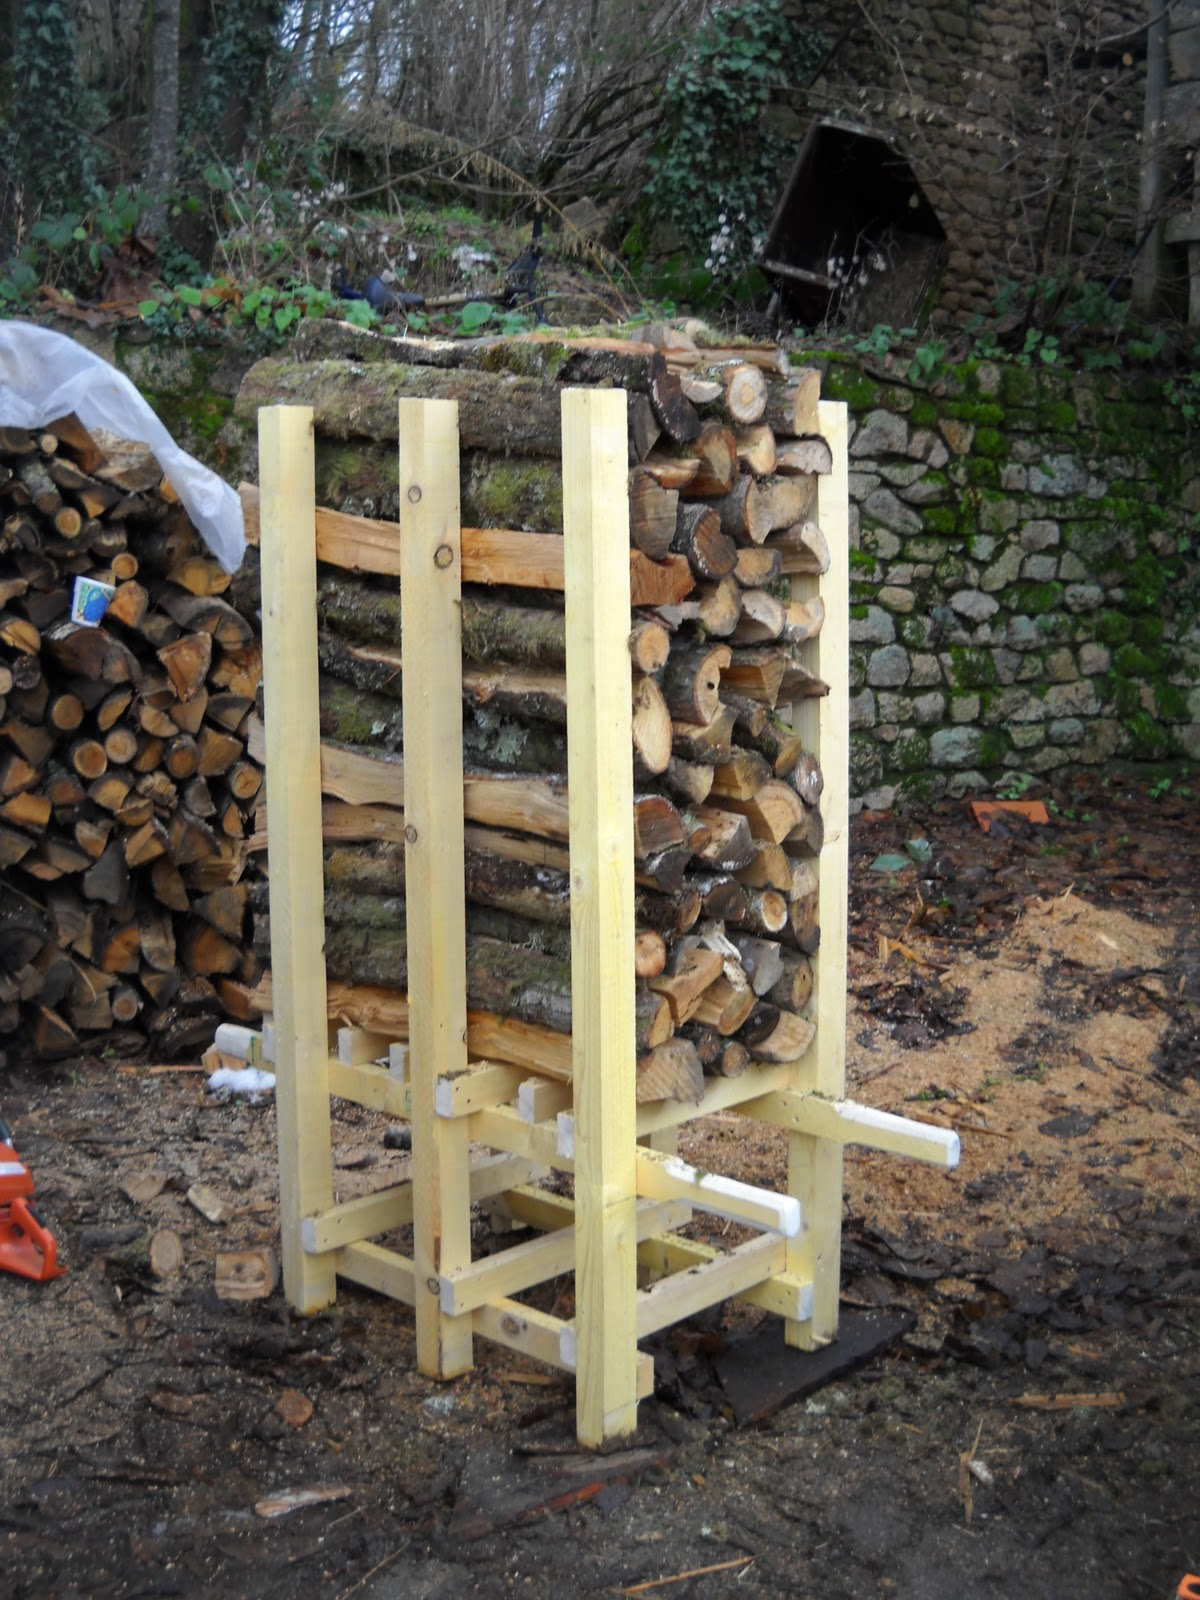 The logs are packed as solidly as possible into the frame which